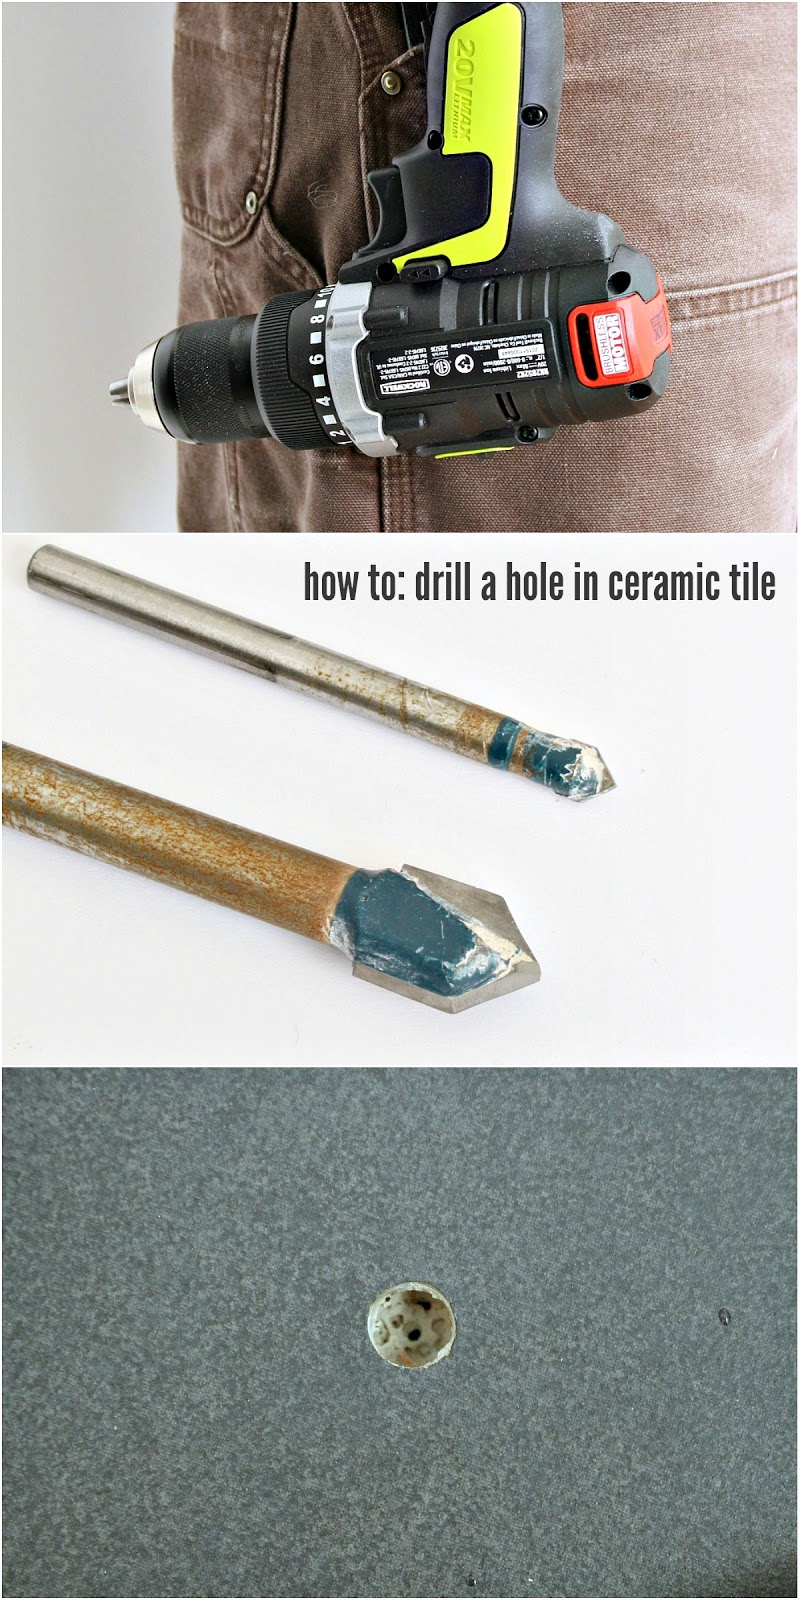 How do you drill a hole in ceramic tile